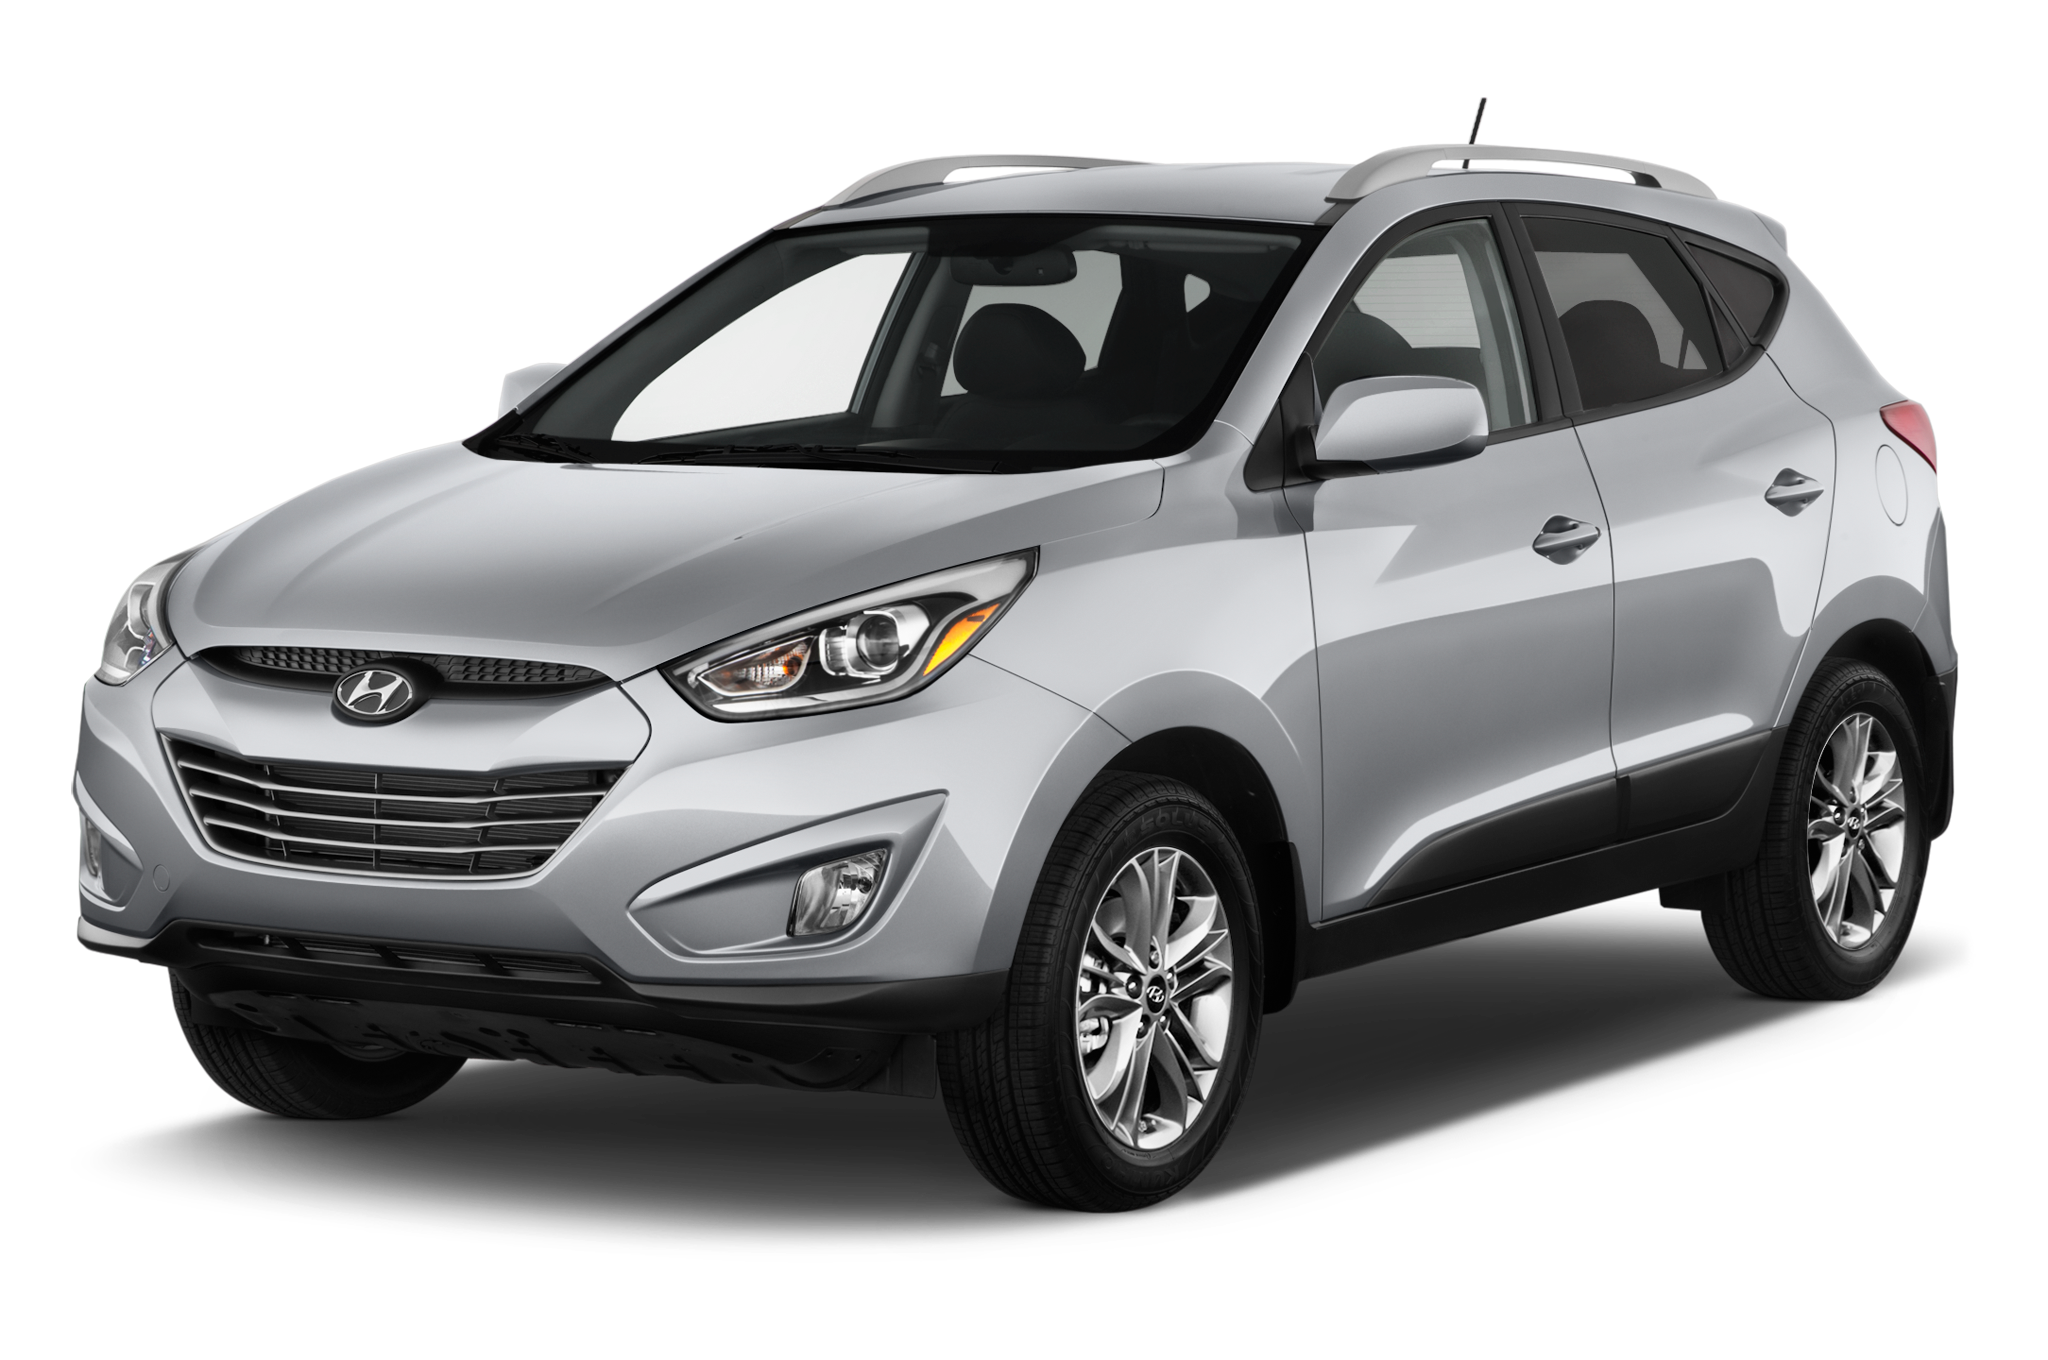 2015 Hyundai Tucsona Review and Price An awesome vehicle like 2015